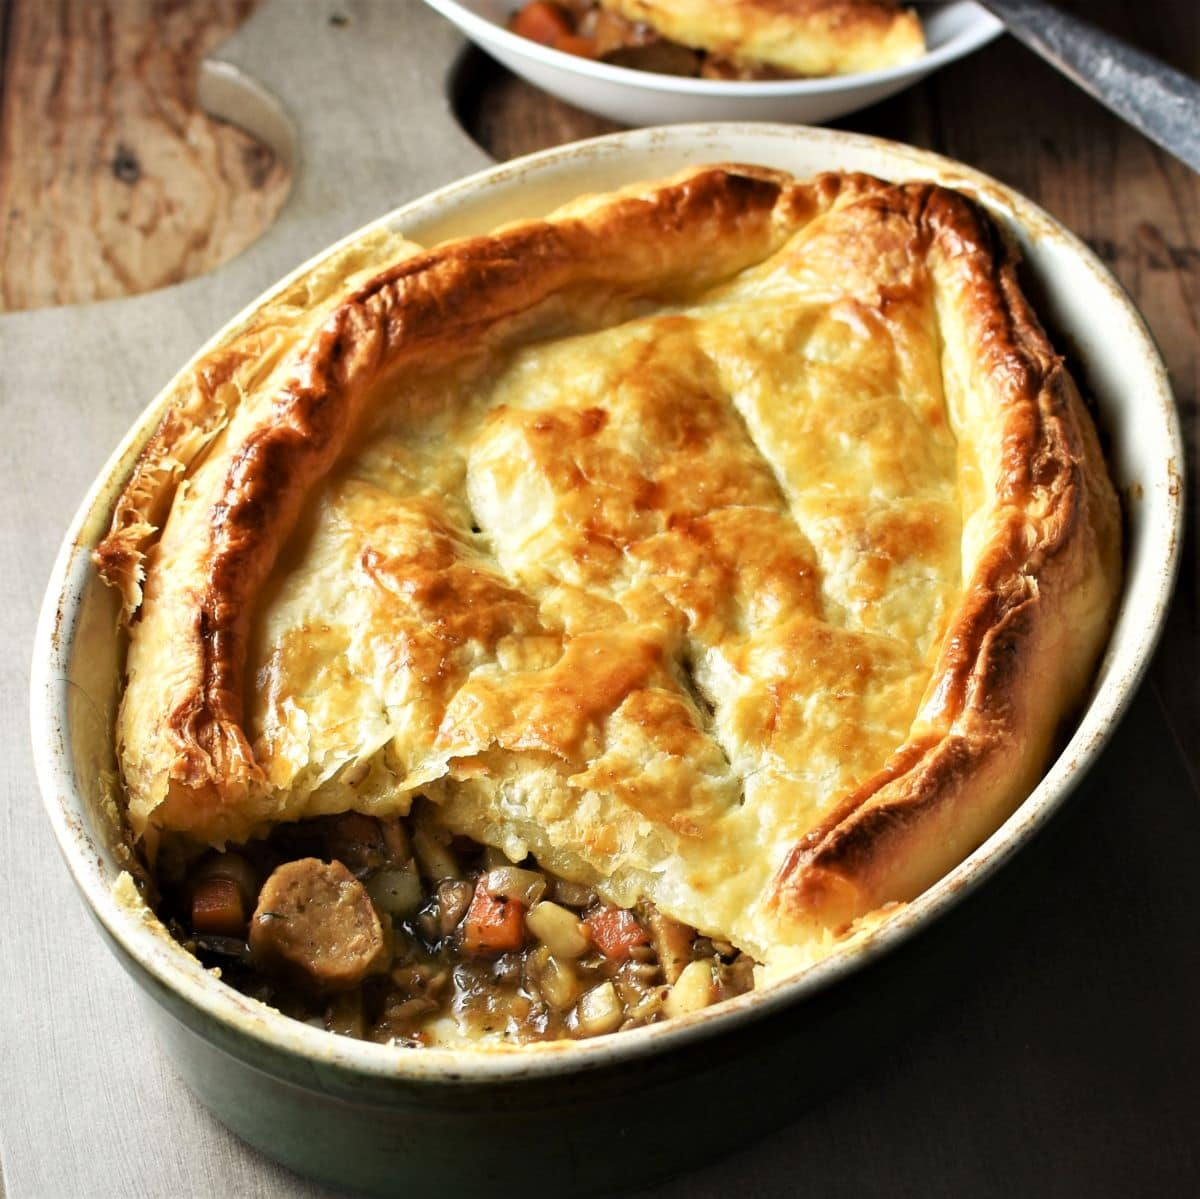 Side view of sausage pie with puff pastry in oval dish.